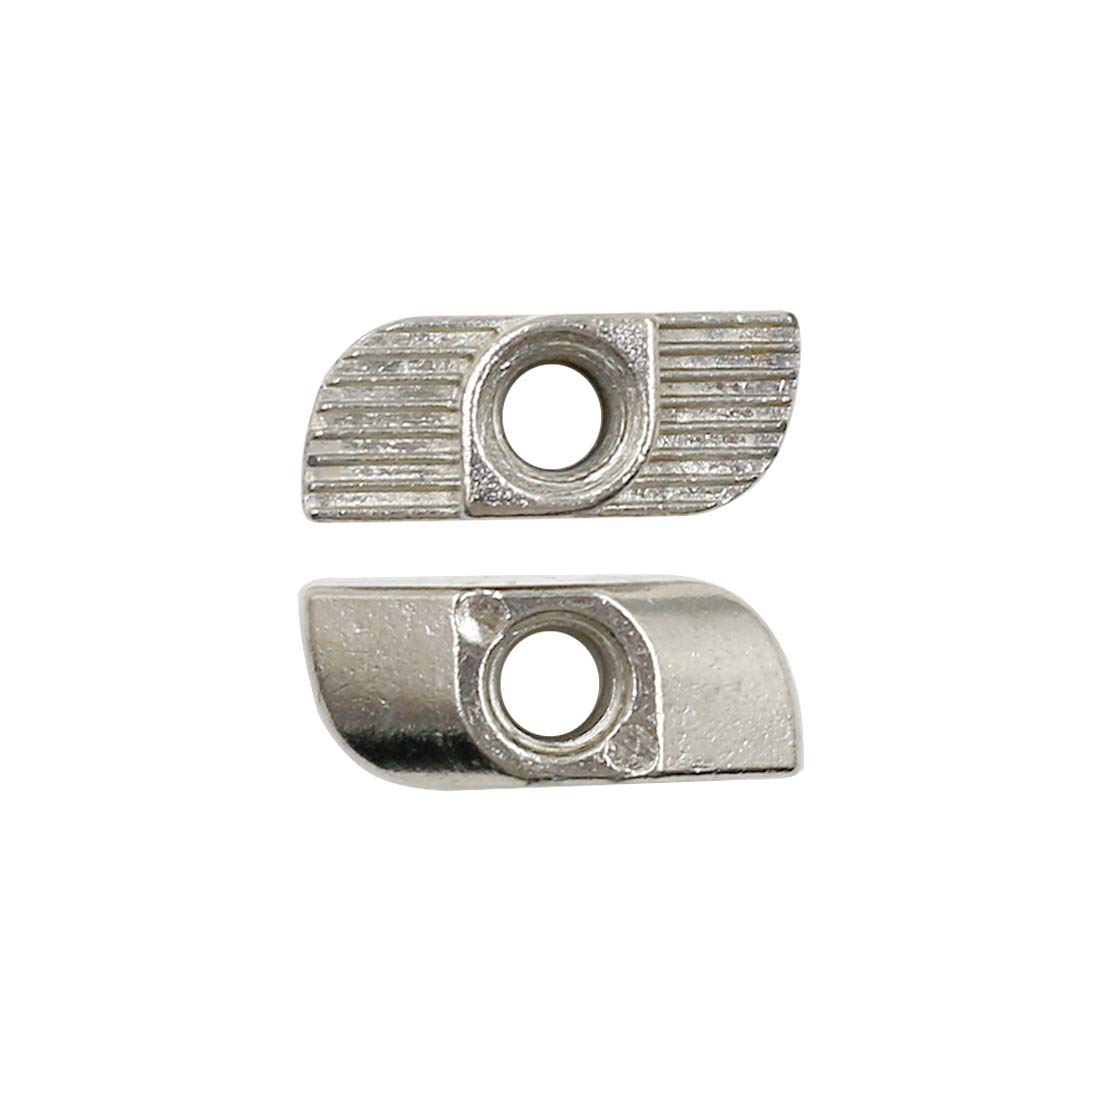 Yoohey 10PCS T Nuts 4040 Series M5 Sliding T Slot Nuts Nickel-Plated Carbon Steel Half Round Roll in T-Nut